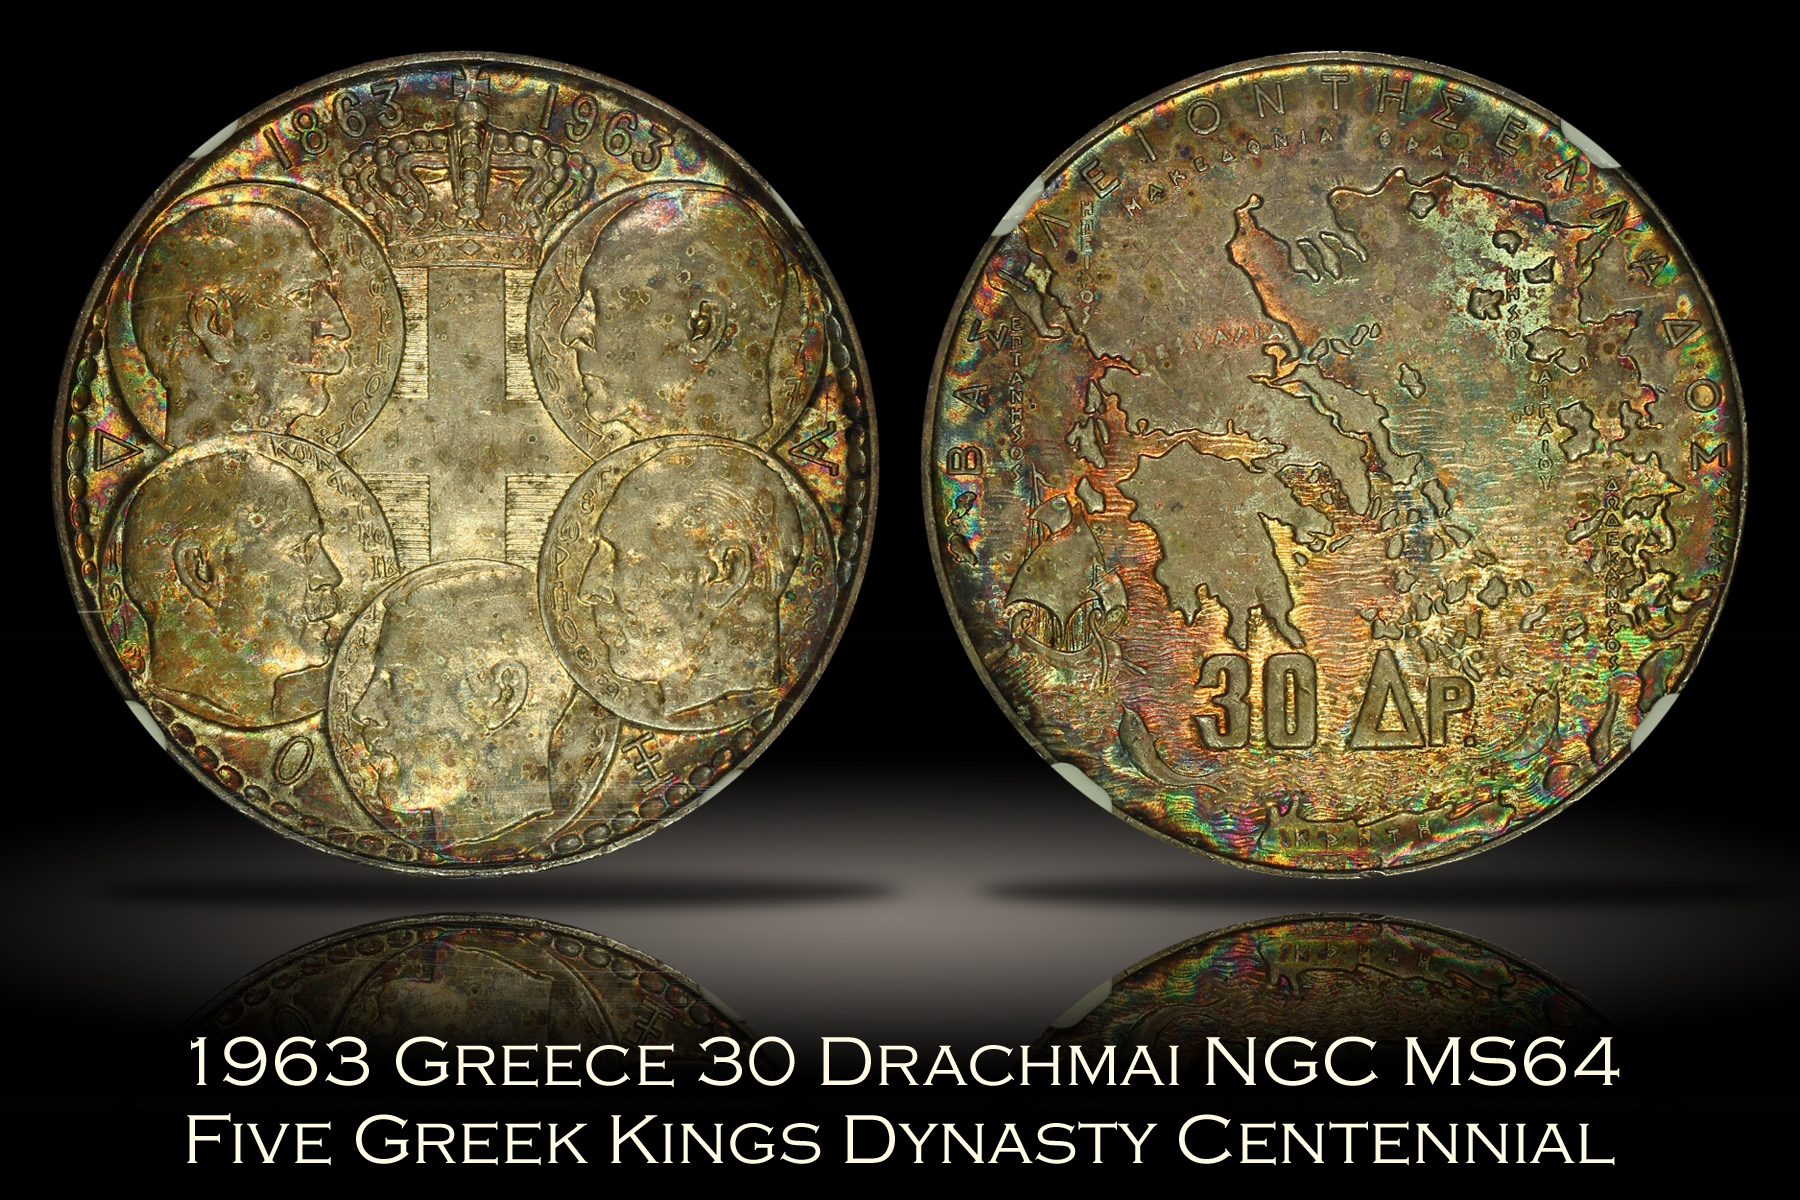 1963 Greece 30 Drachmai Dynasty Centennial NGC MS64